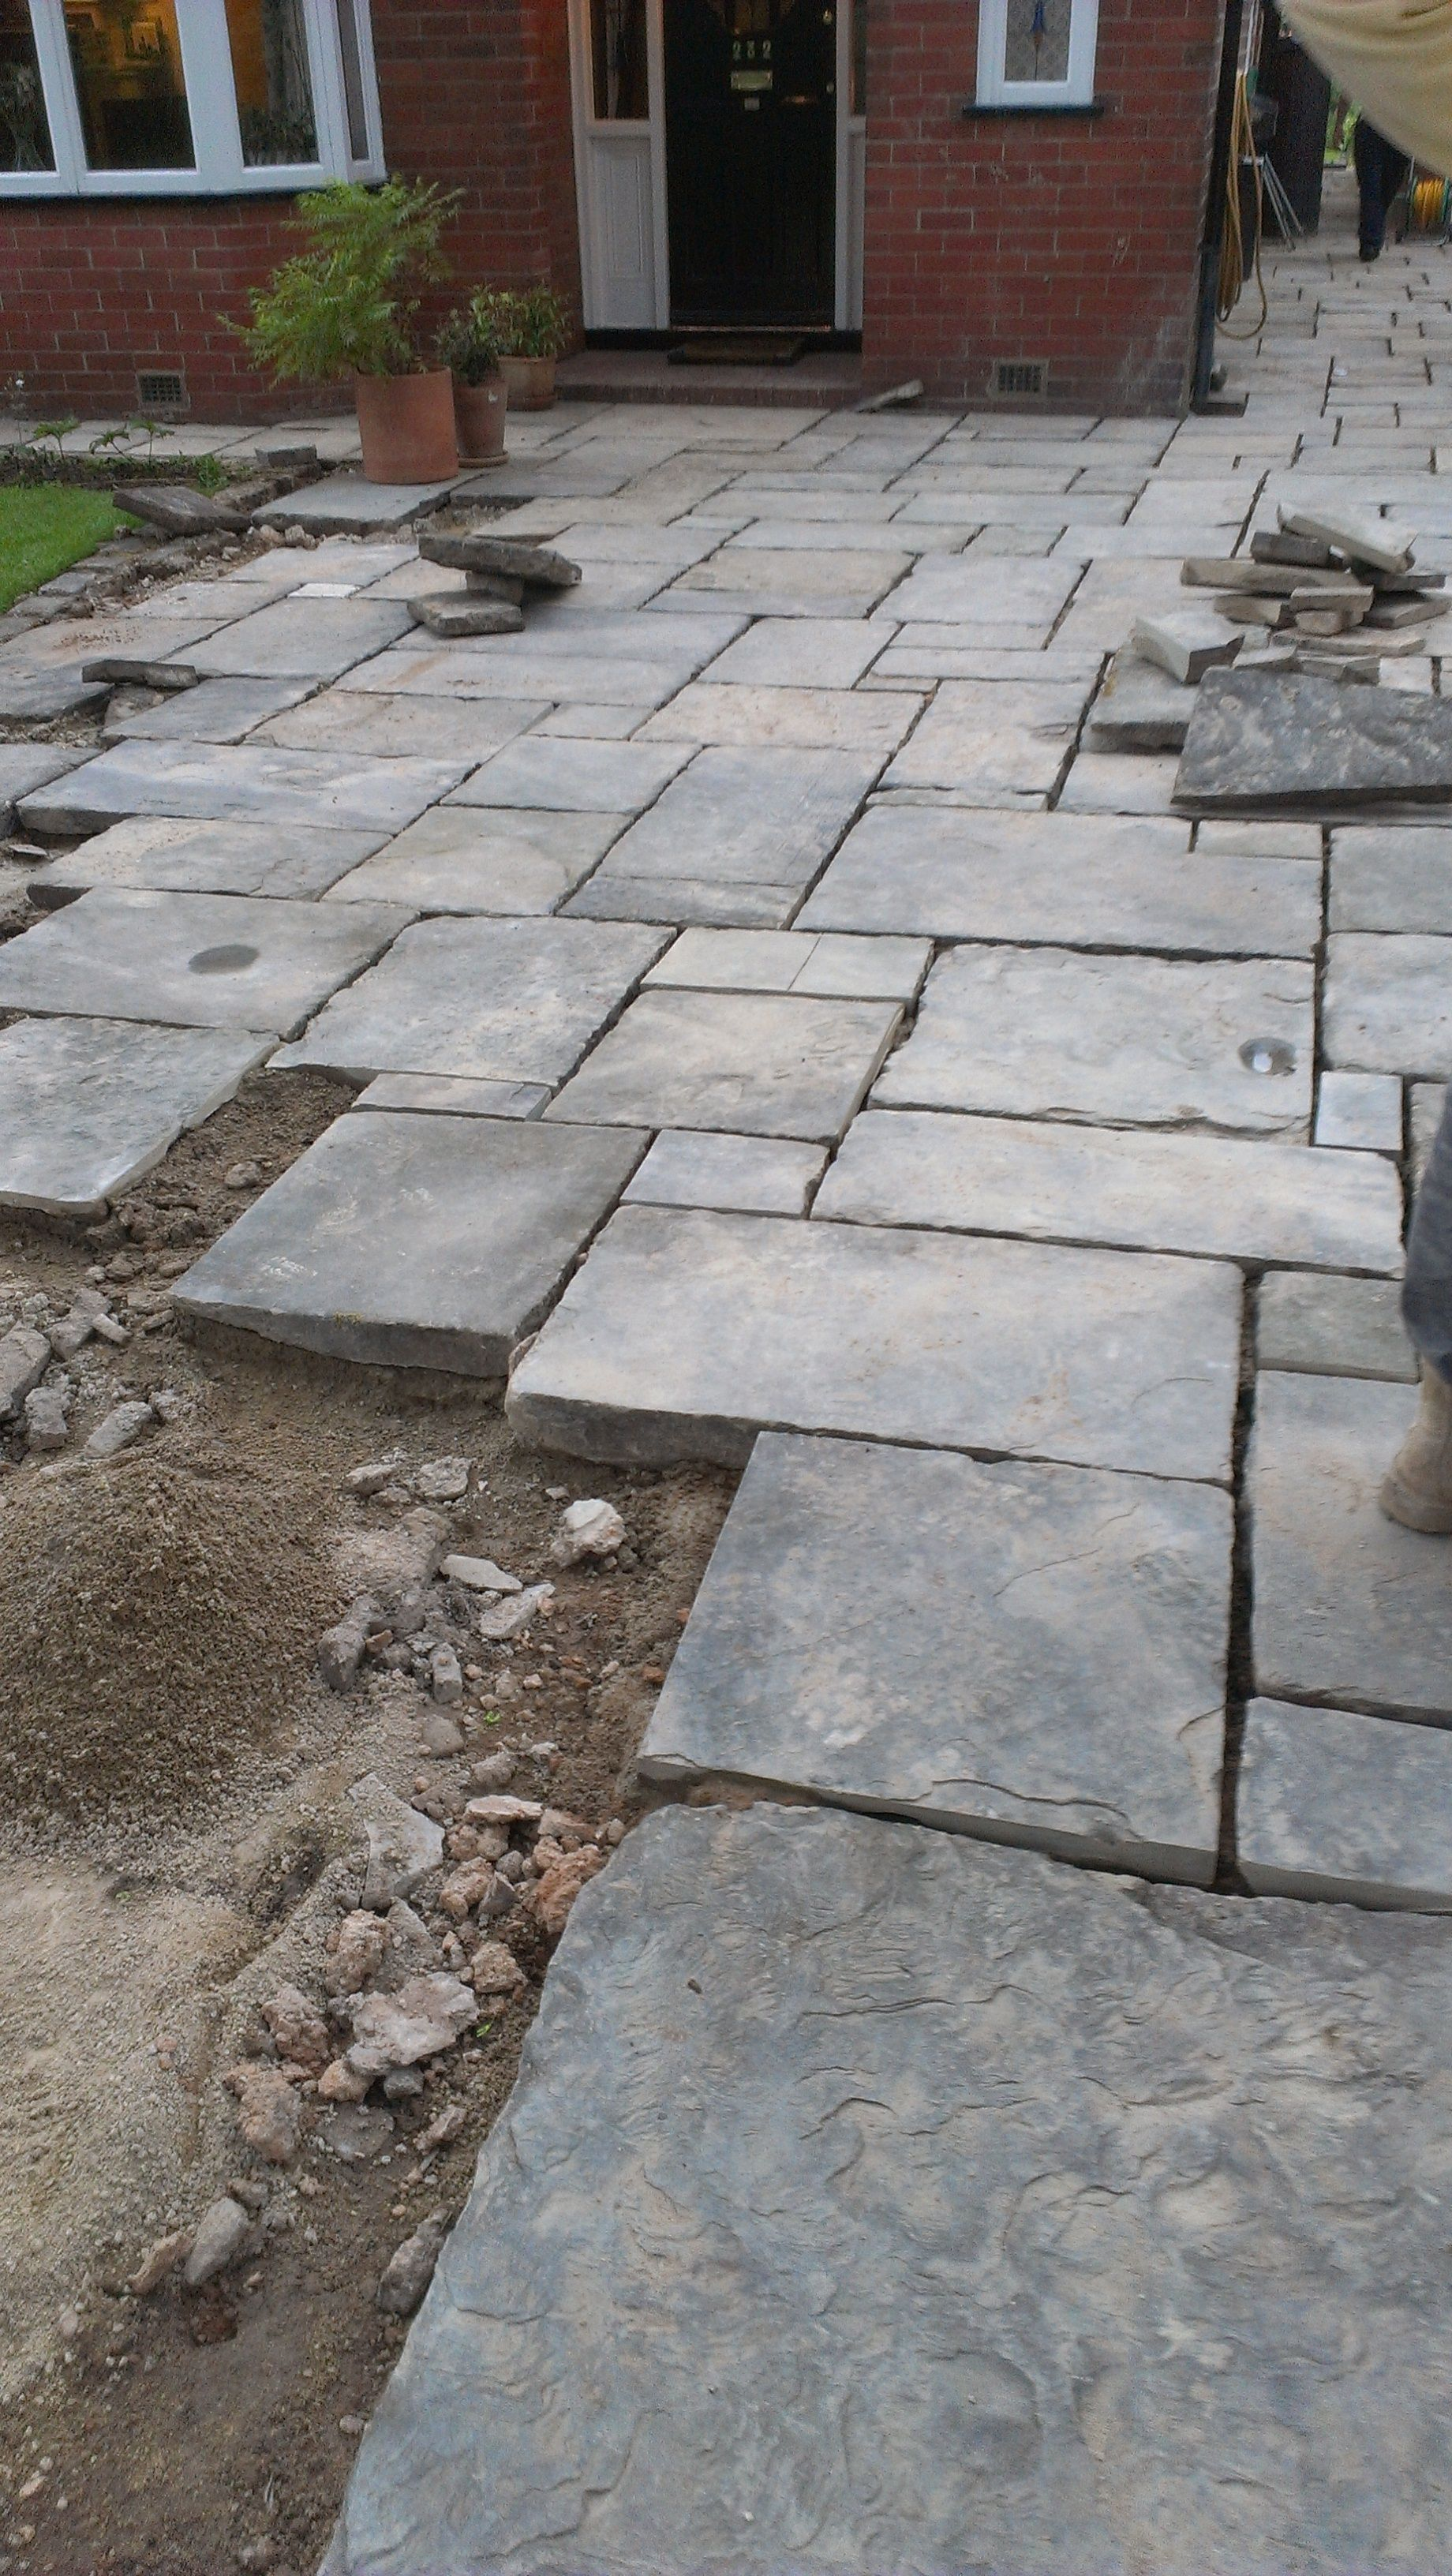 Reclaimed Yorkstone It S Unmistakable Riven Appearance Makes For One Of The Most Attractive Of Natural Stone Pav Patio Stones Patio Pavers Design Patio Slabs